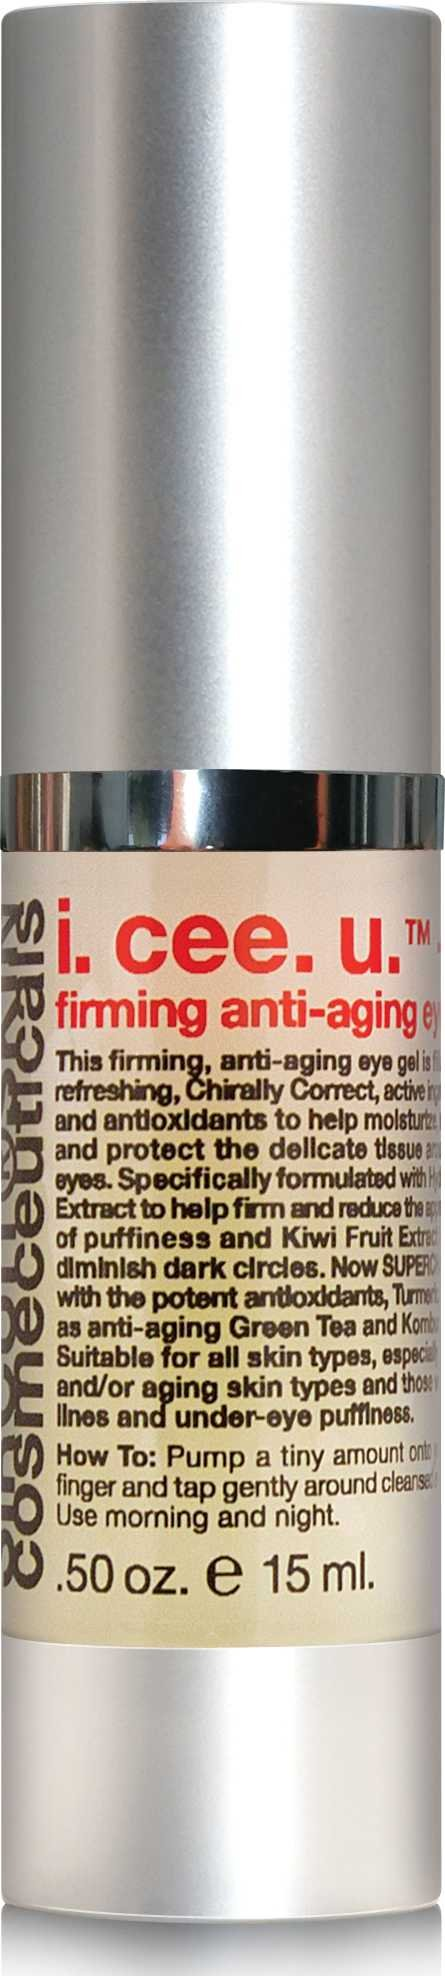 Sircuit Skin - I. CEE. U.+ Firming Anti-Aging Eye Gel, 0.5 oz.